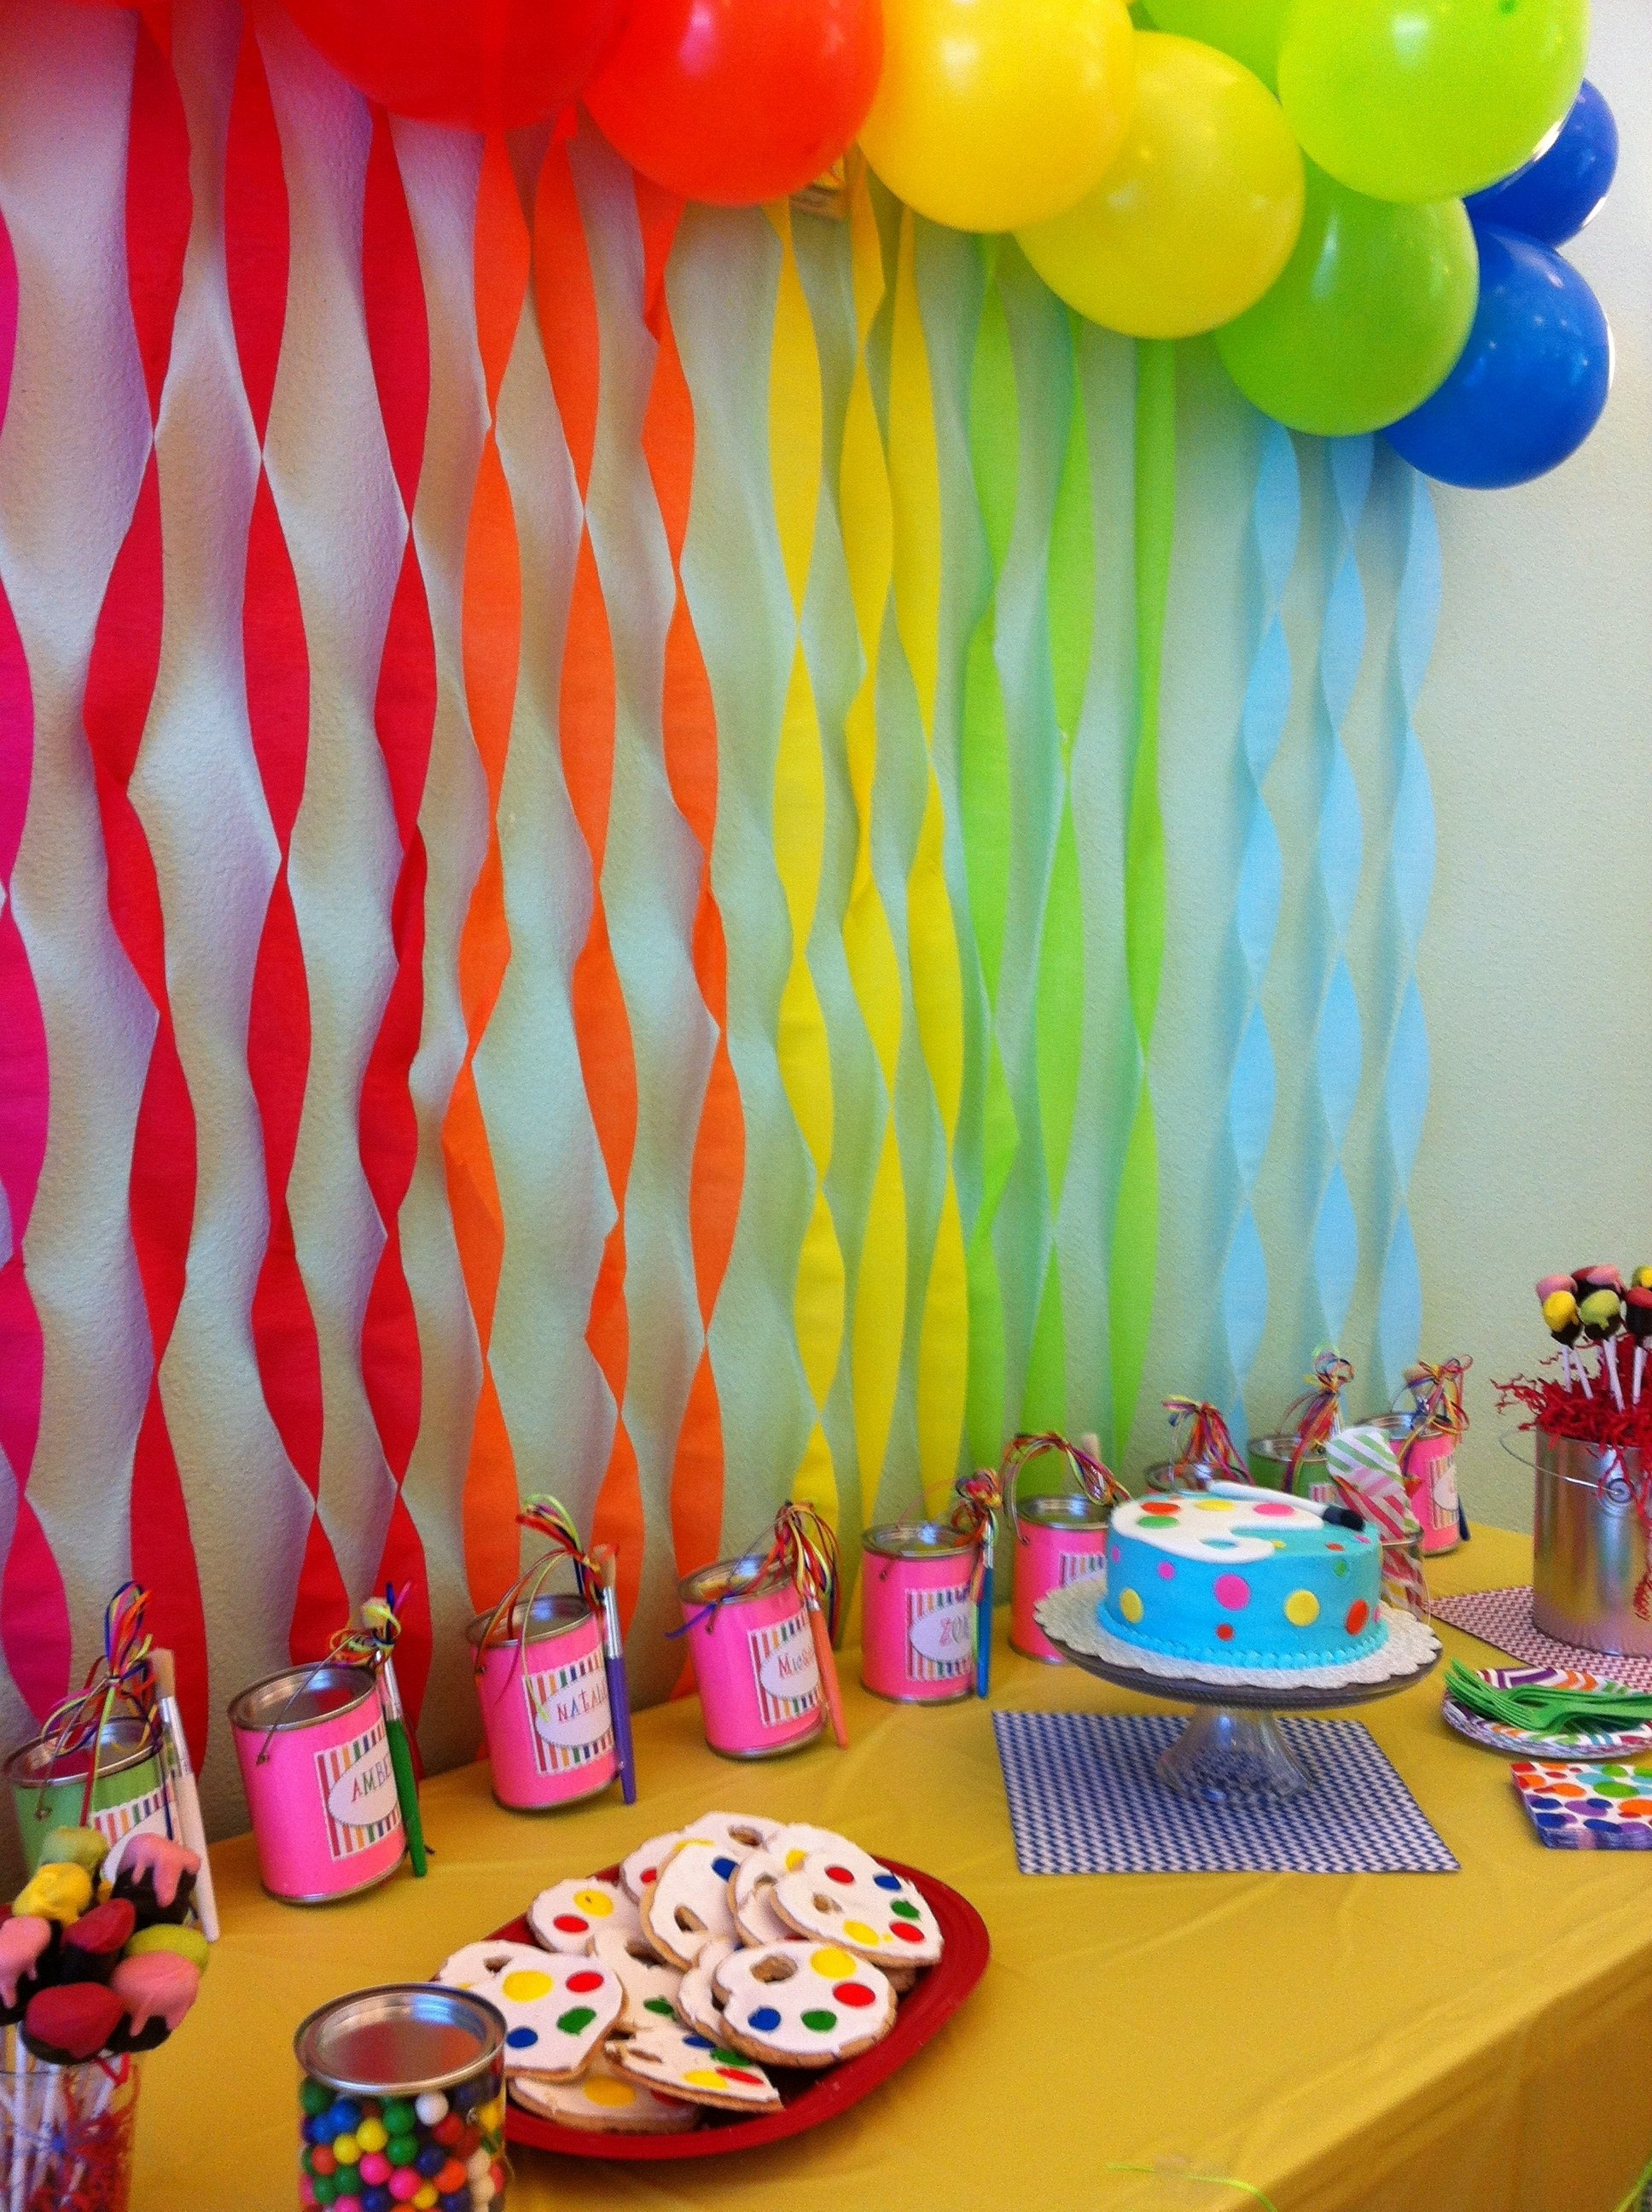 10 Great 1 Year Old Birthday Party Ideas 28 amazing gallery in excess of 1 year old birthday party ideas 2020